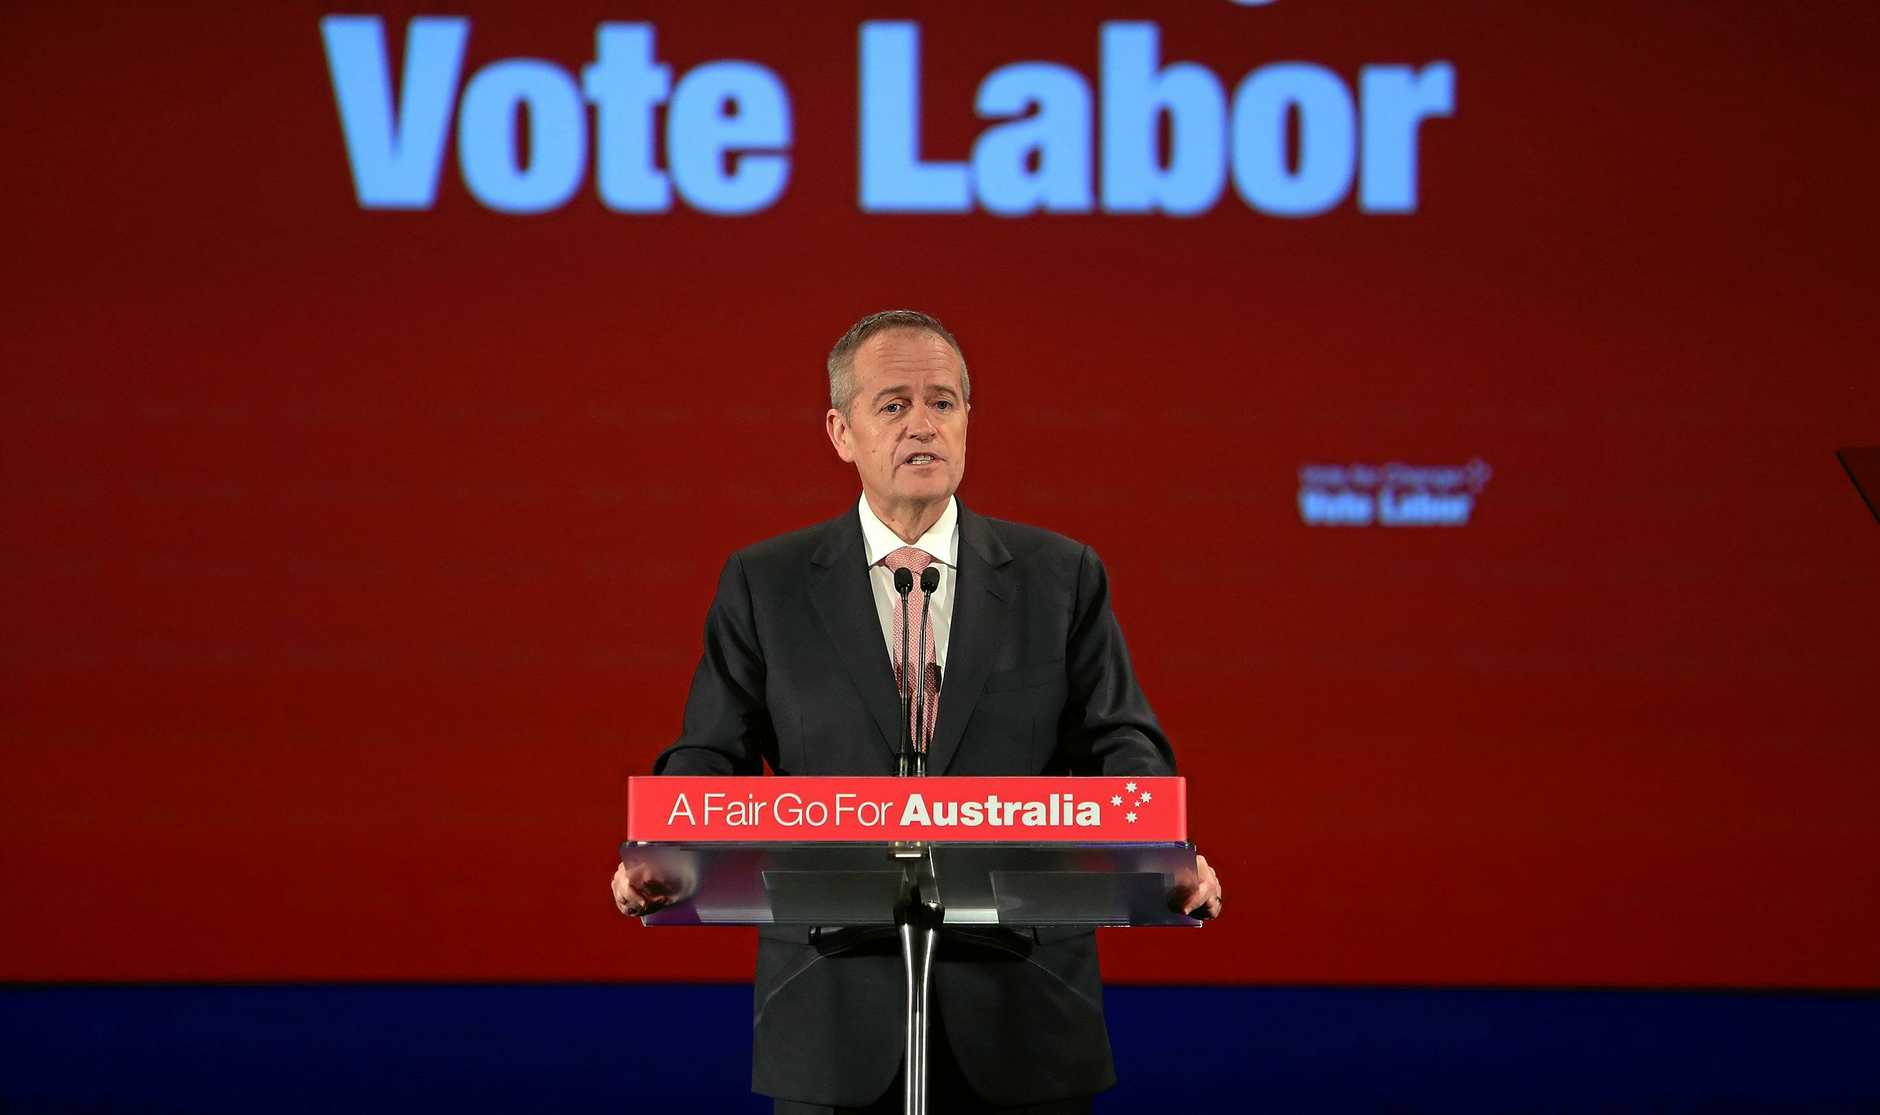 TO BE FRANK: Then-Opposition Leader Bill Shorten addressing the final week campaign rally before the election. David French says the centrepiece of Labor's tax plan was their downfall.